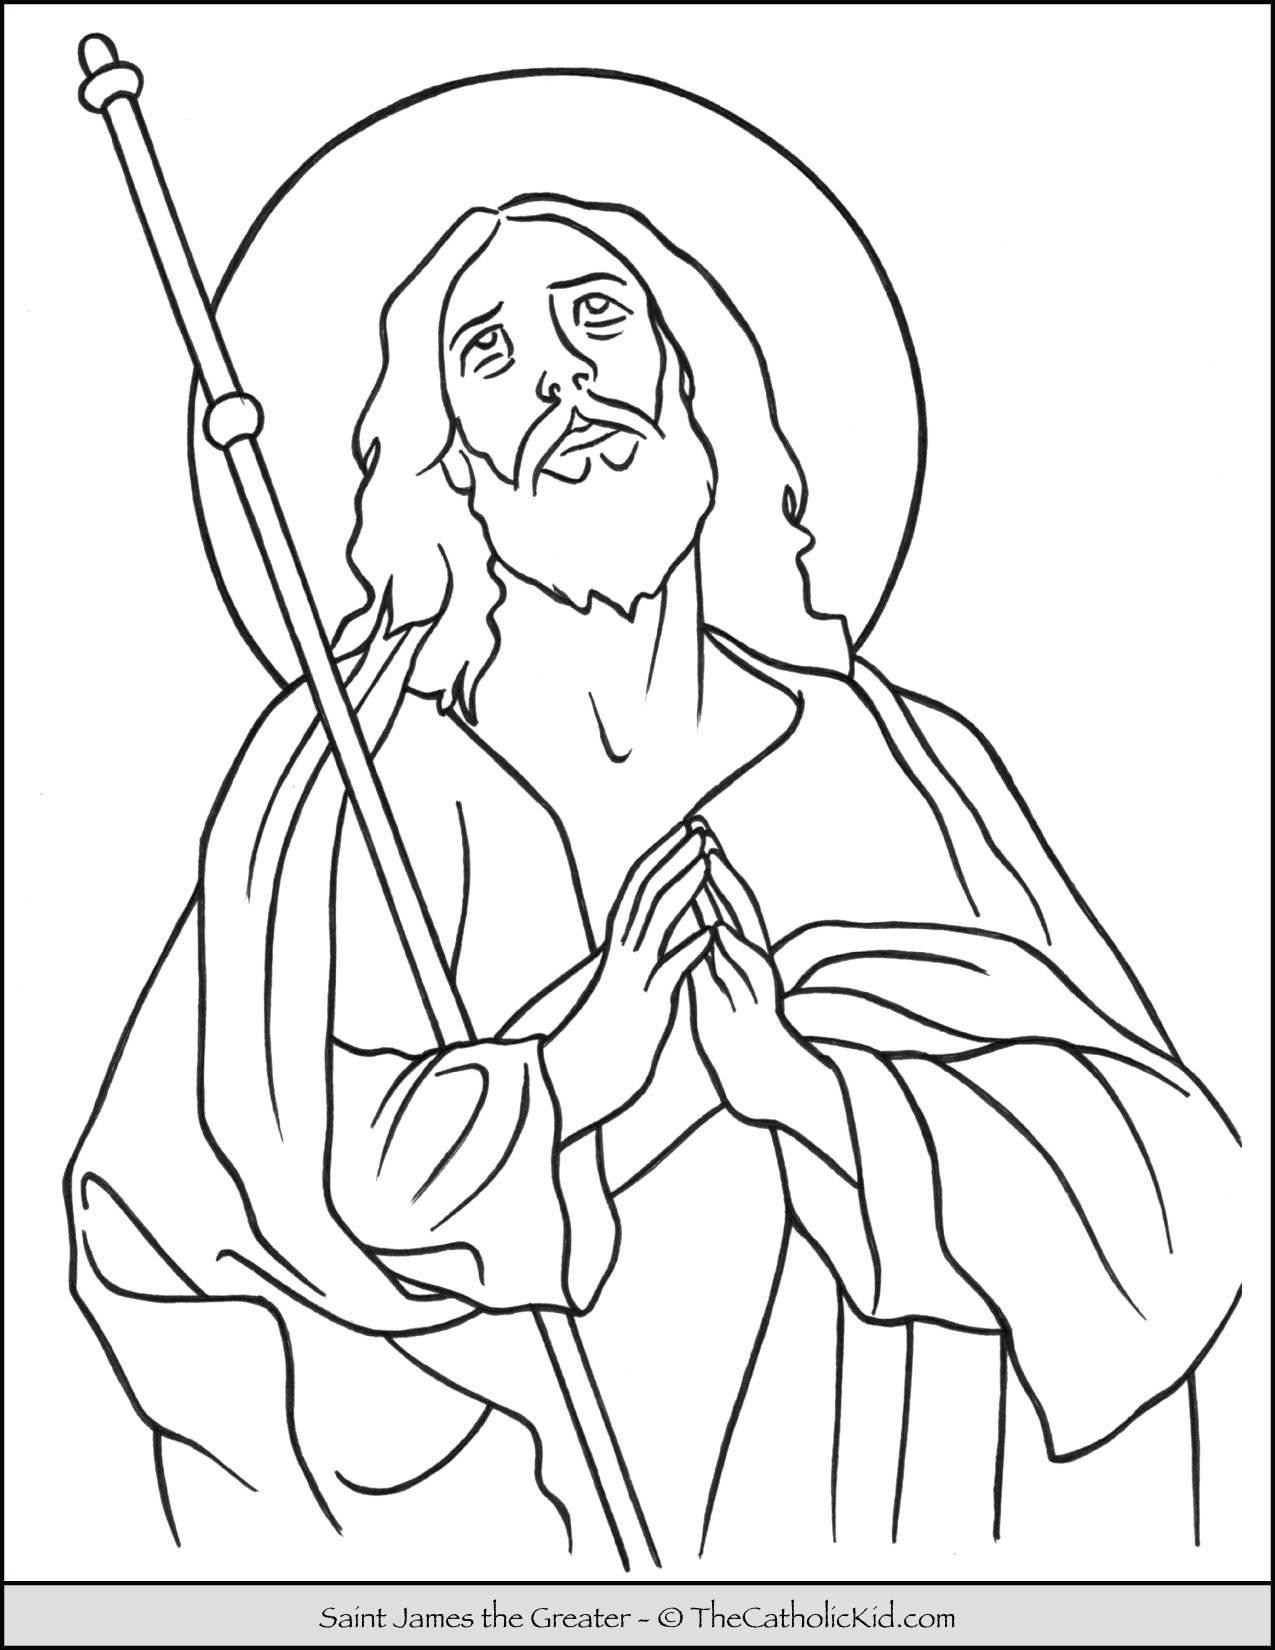 Saint James the Greater Coloring Page